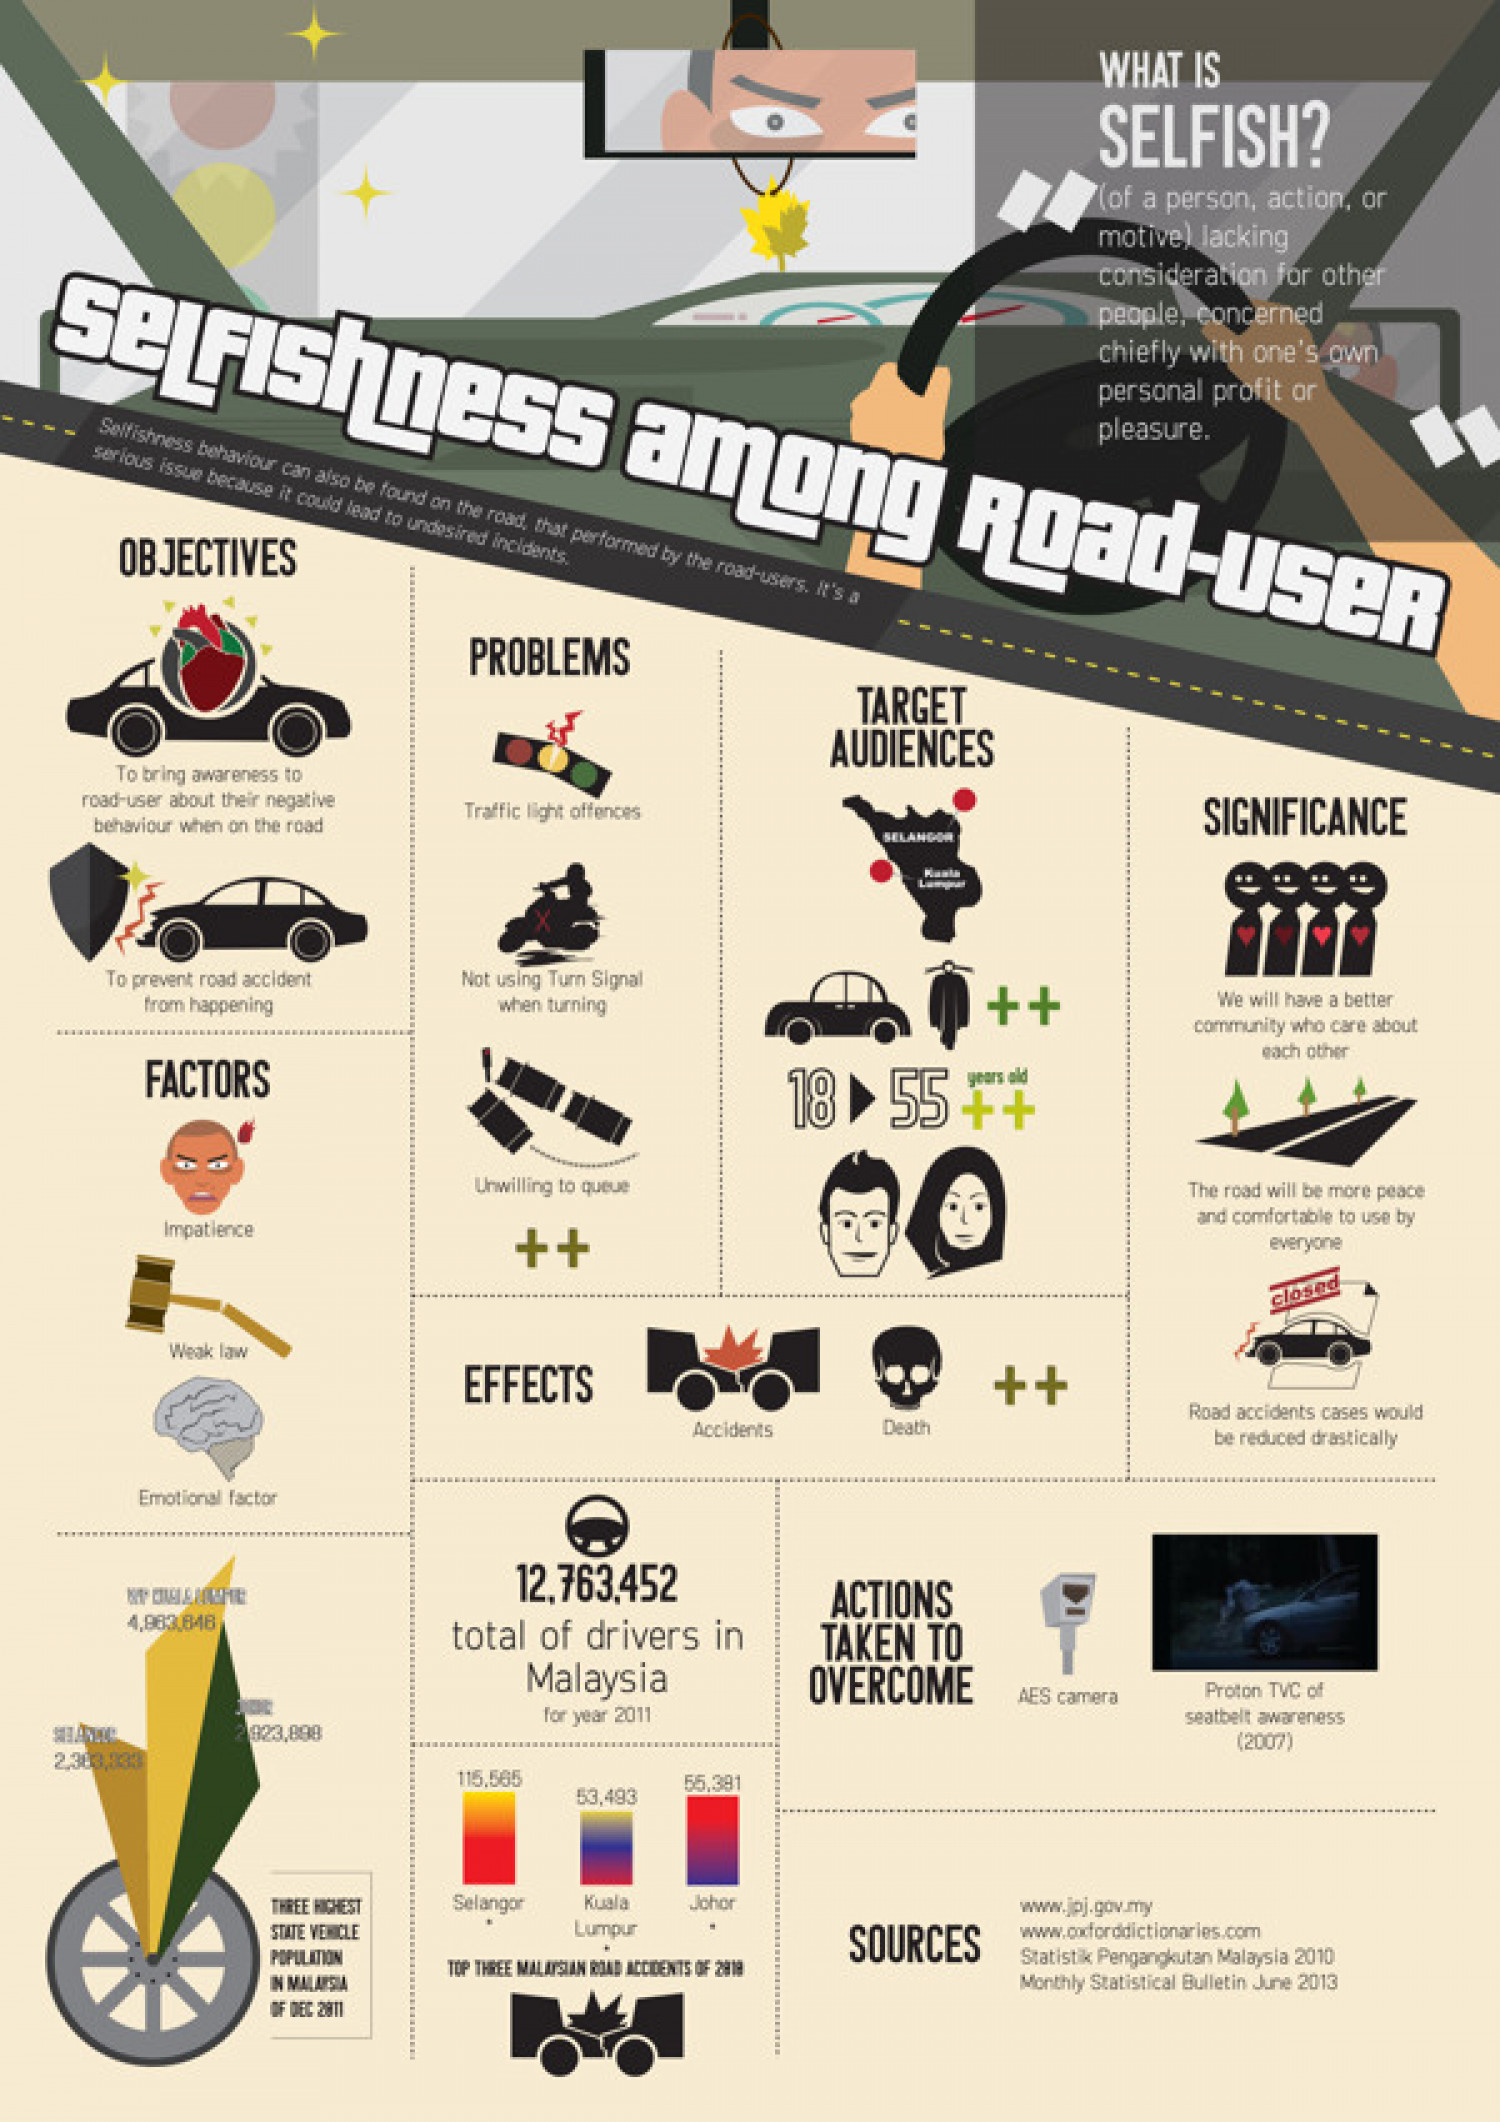 Selfishness Among Road-User Infographic